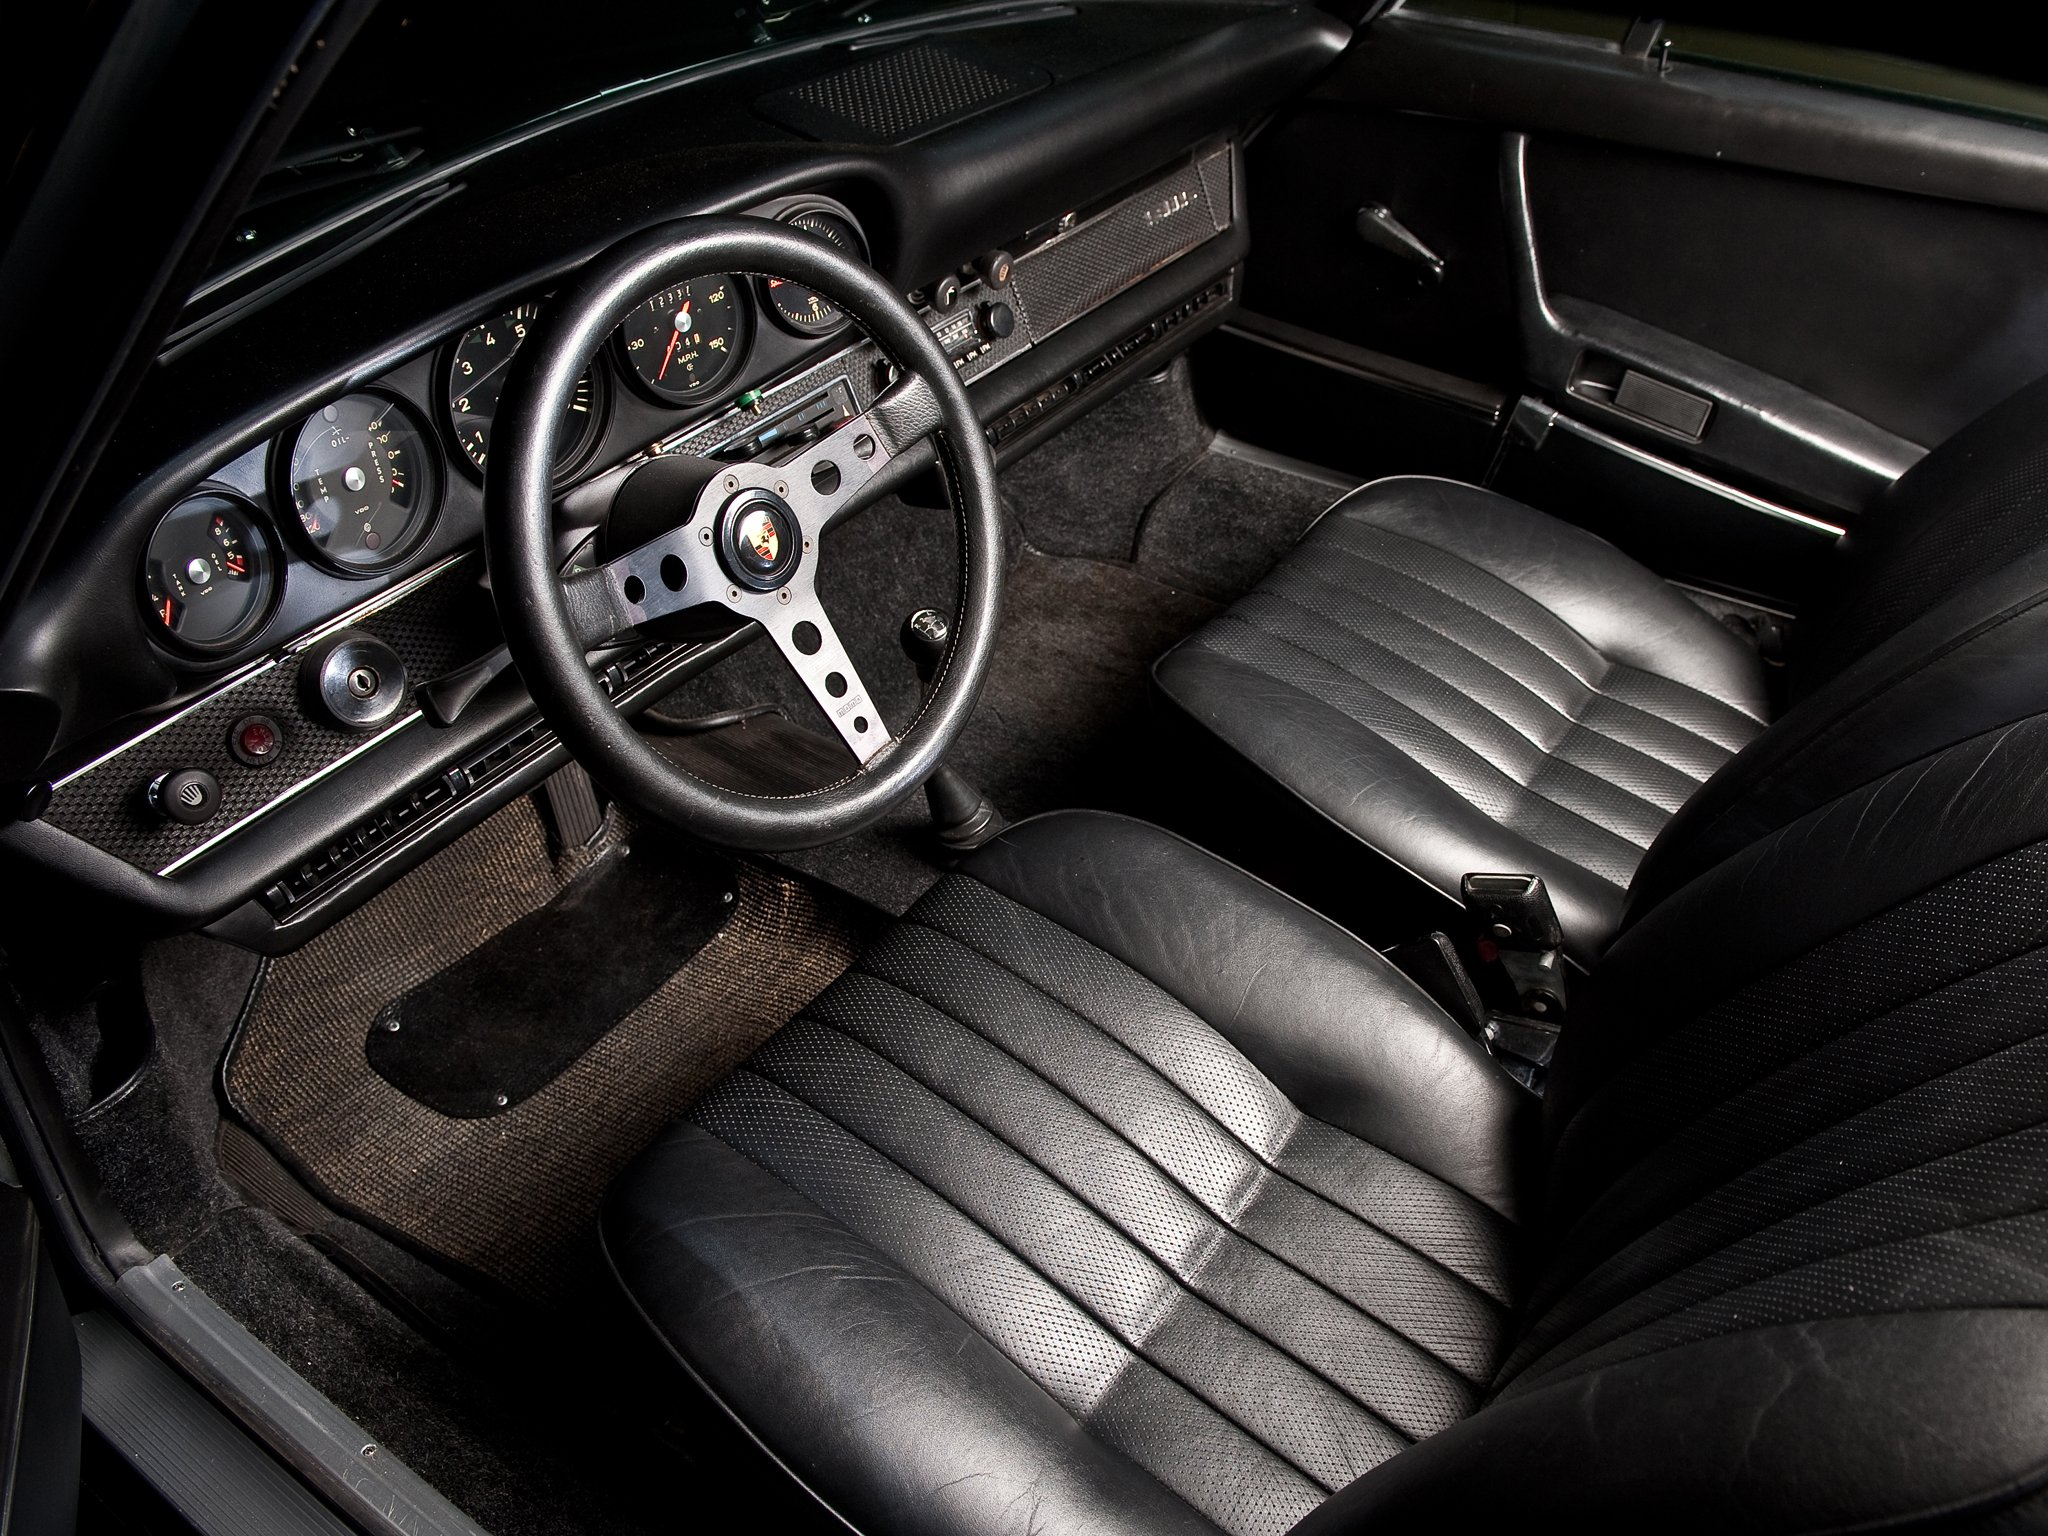 1970 porsche 911 s coupe us spec 911 classic interior g wallpaper 2048x1536 344551. Black Bedroom Furniture Sets. Home Design Ideas